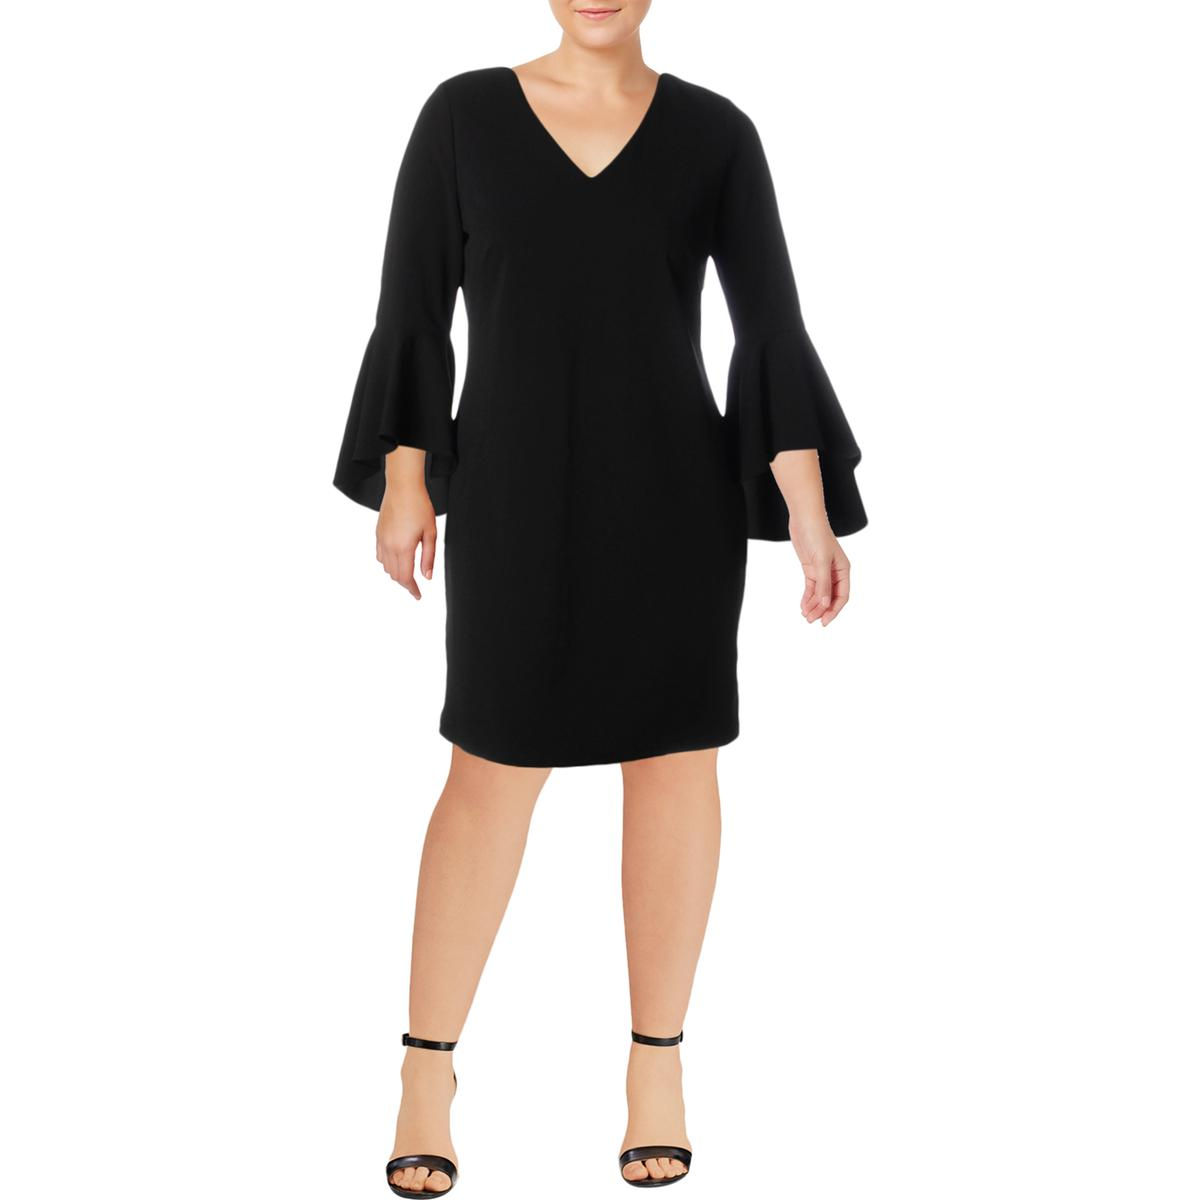 610cbdb767 Details about MSK Womens Black Bell Sleeves V-Neck Party Cocktail Dress 14  BHFO 0462